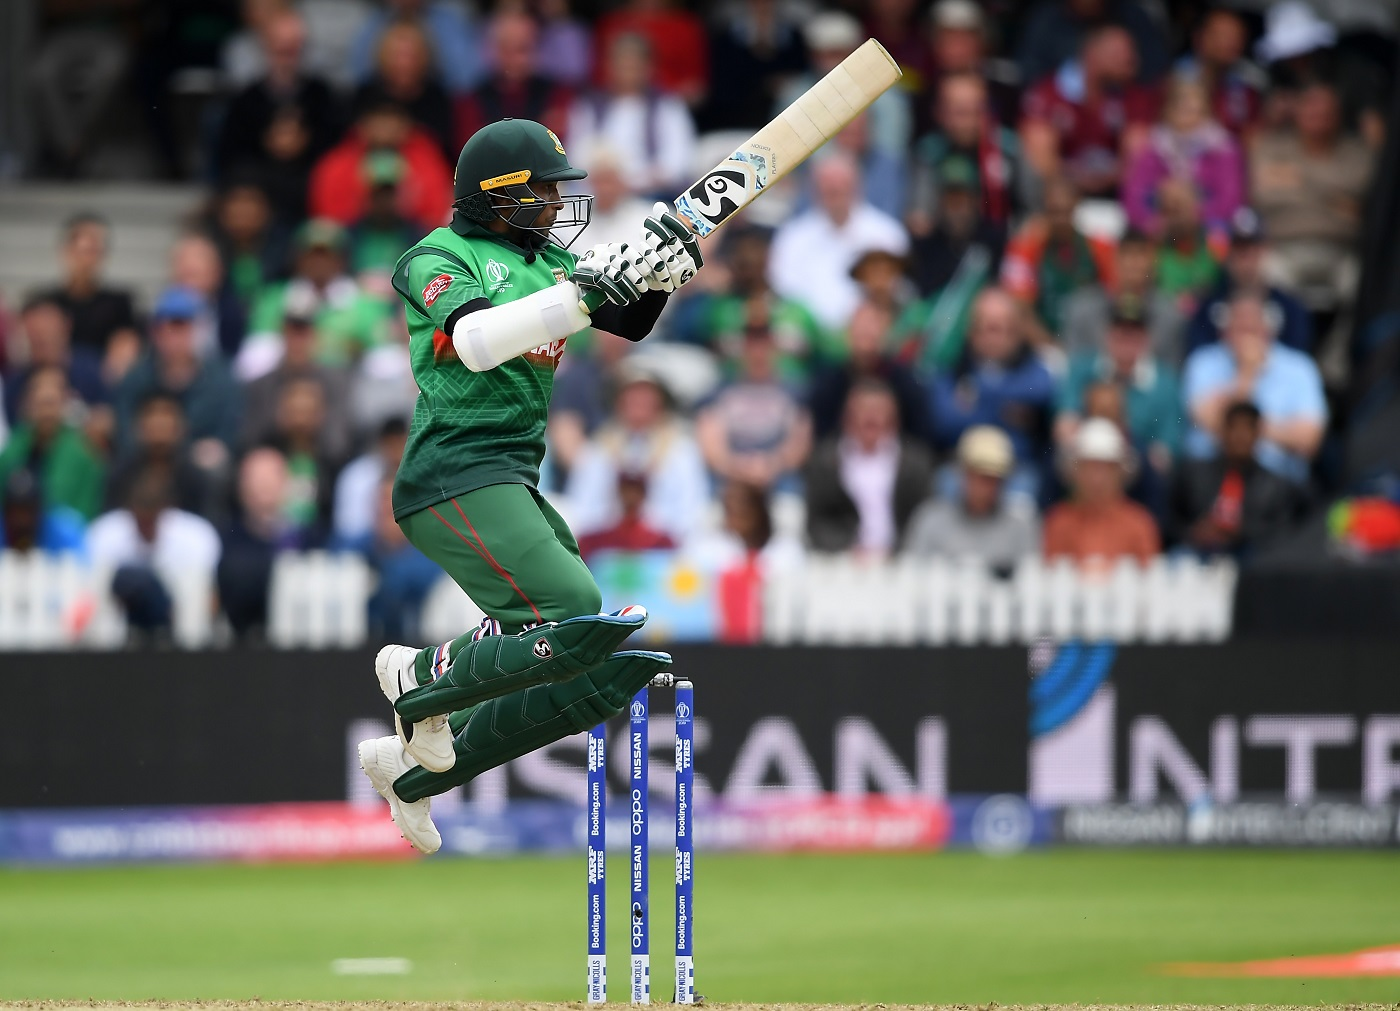 ICC World Cup 2019: Bangladesh Achieve Rare Milestone as they Beat West Indies in Taunton